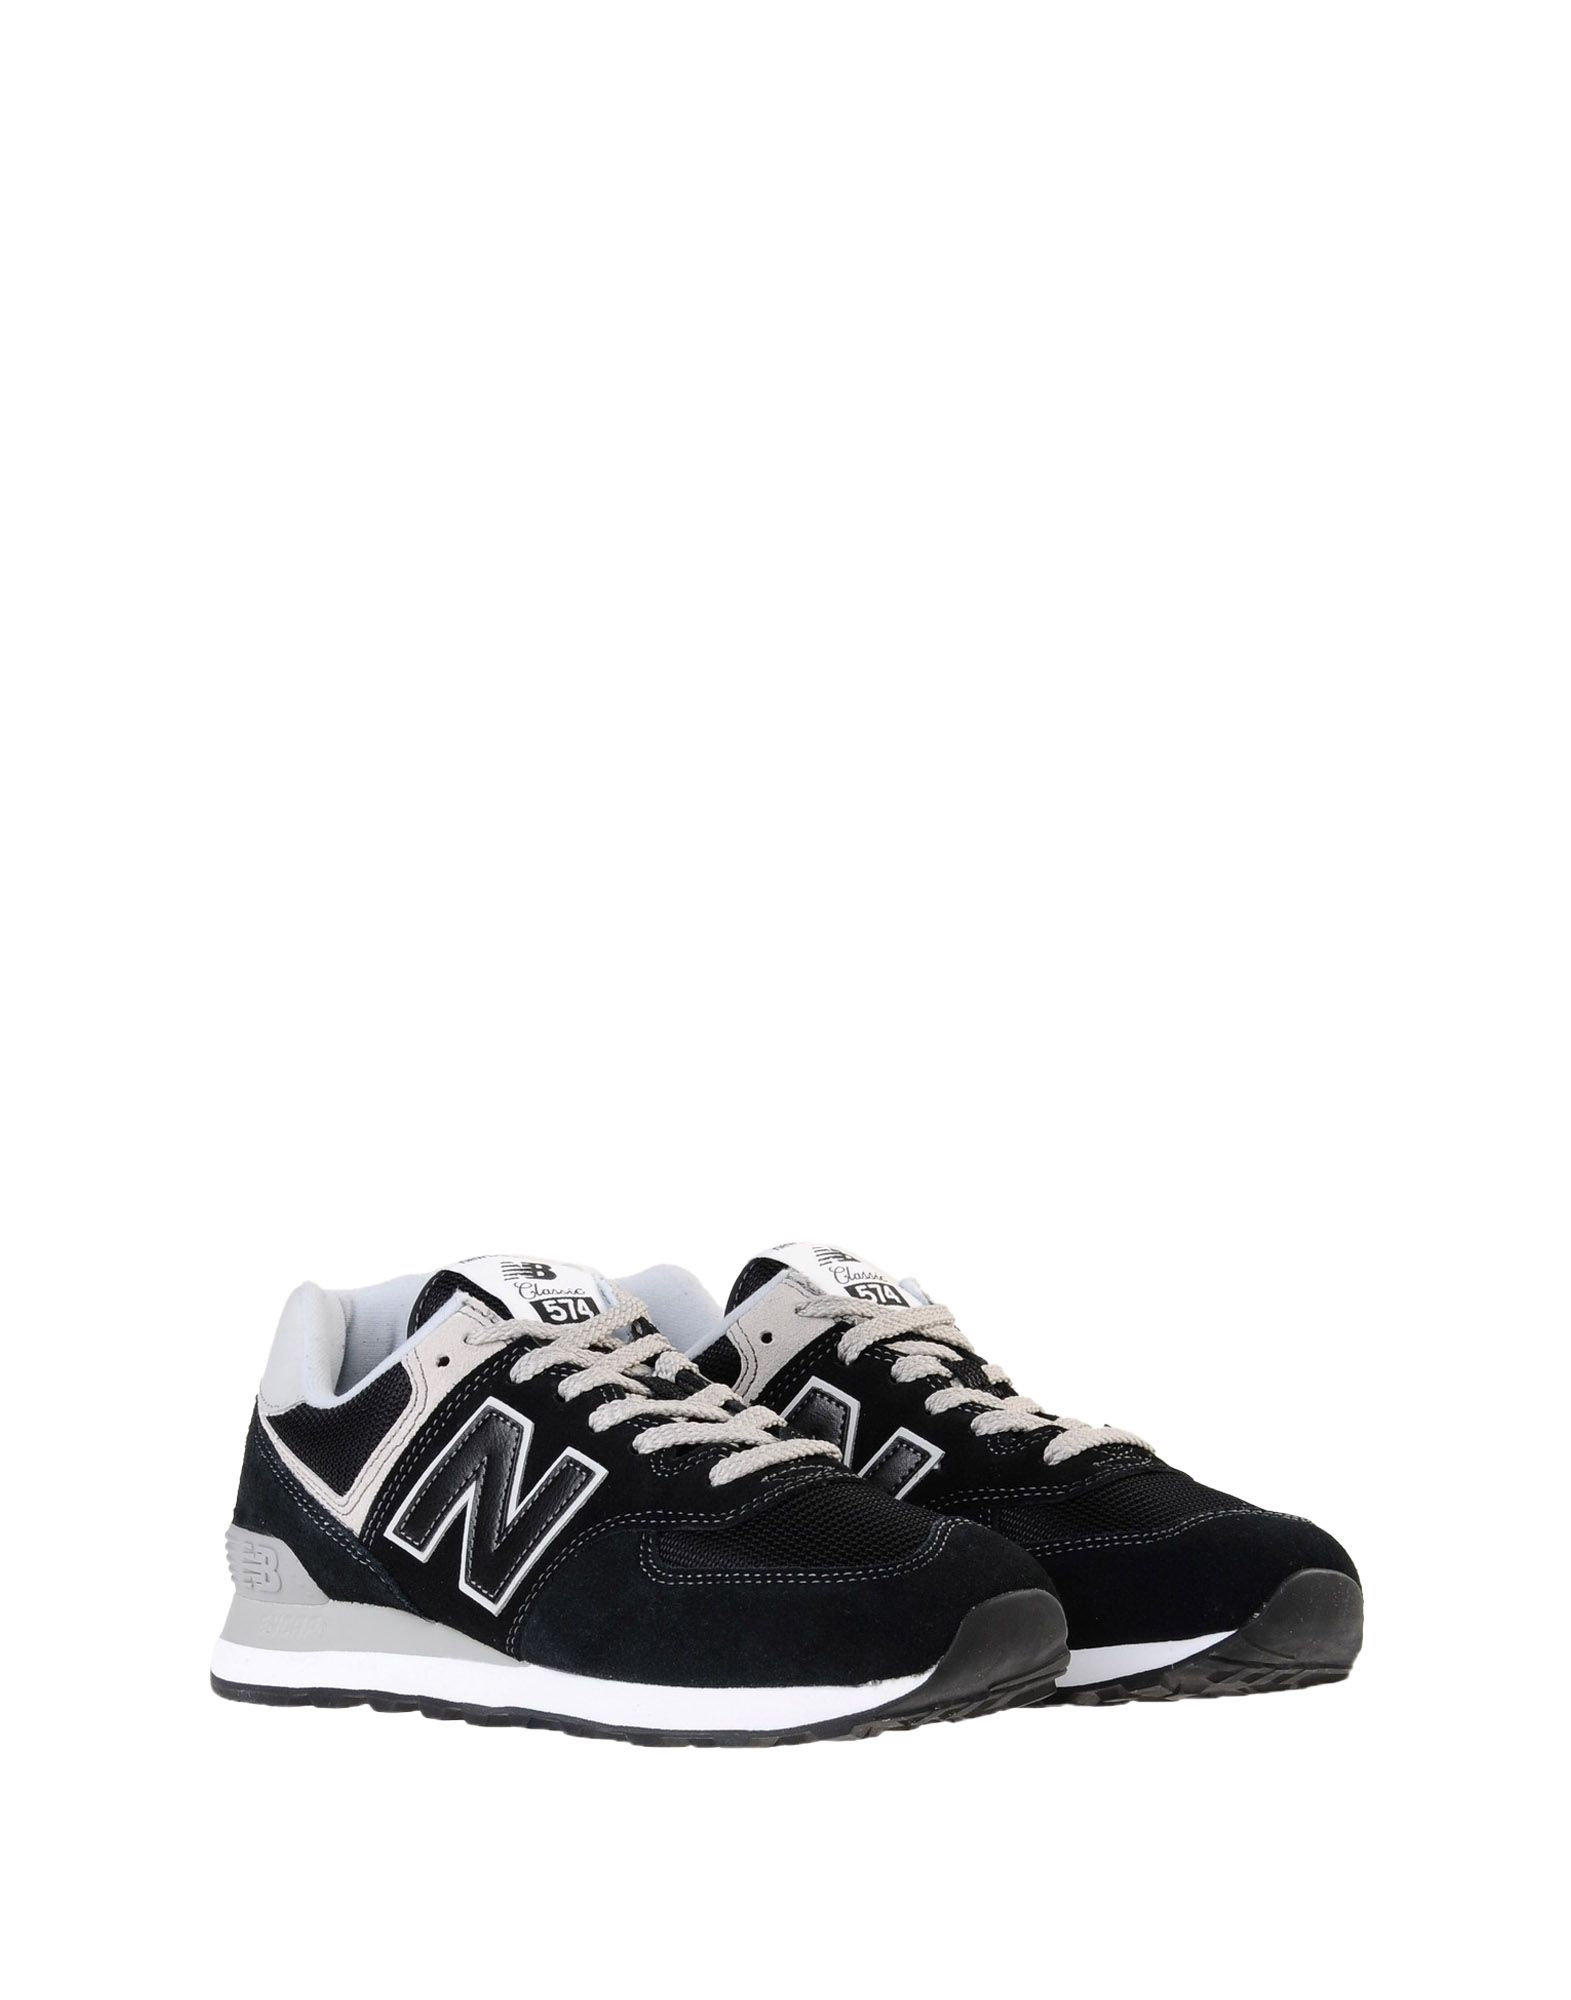 Sneakers New Balance 574 Suede/Mesh Core Colors - Femme - Sneakers New Balance sur